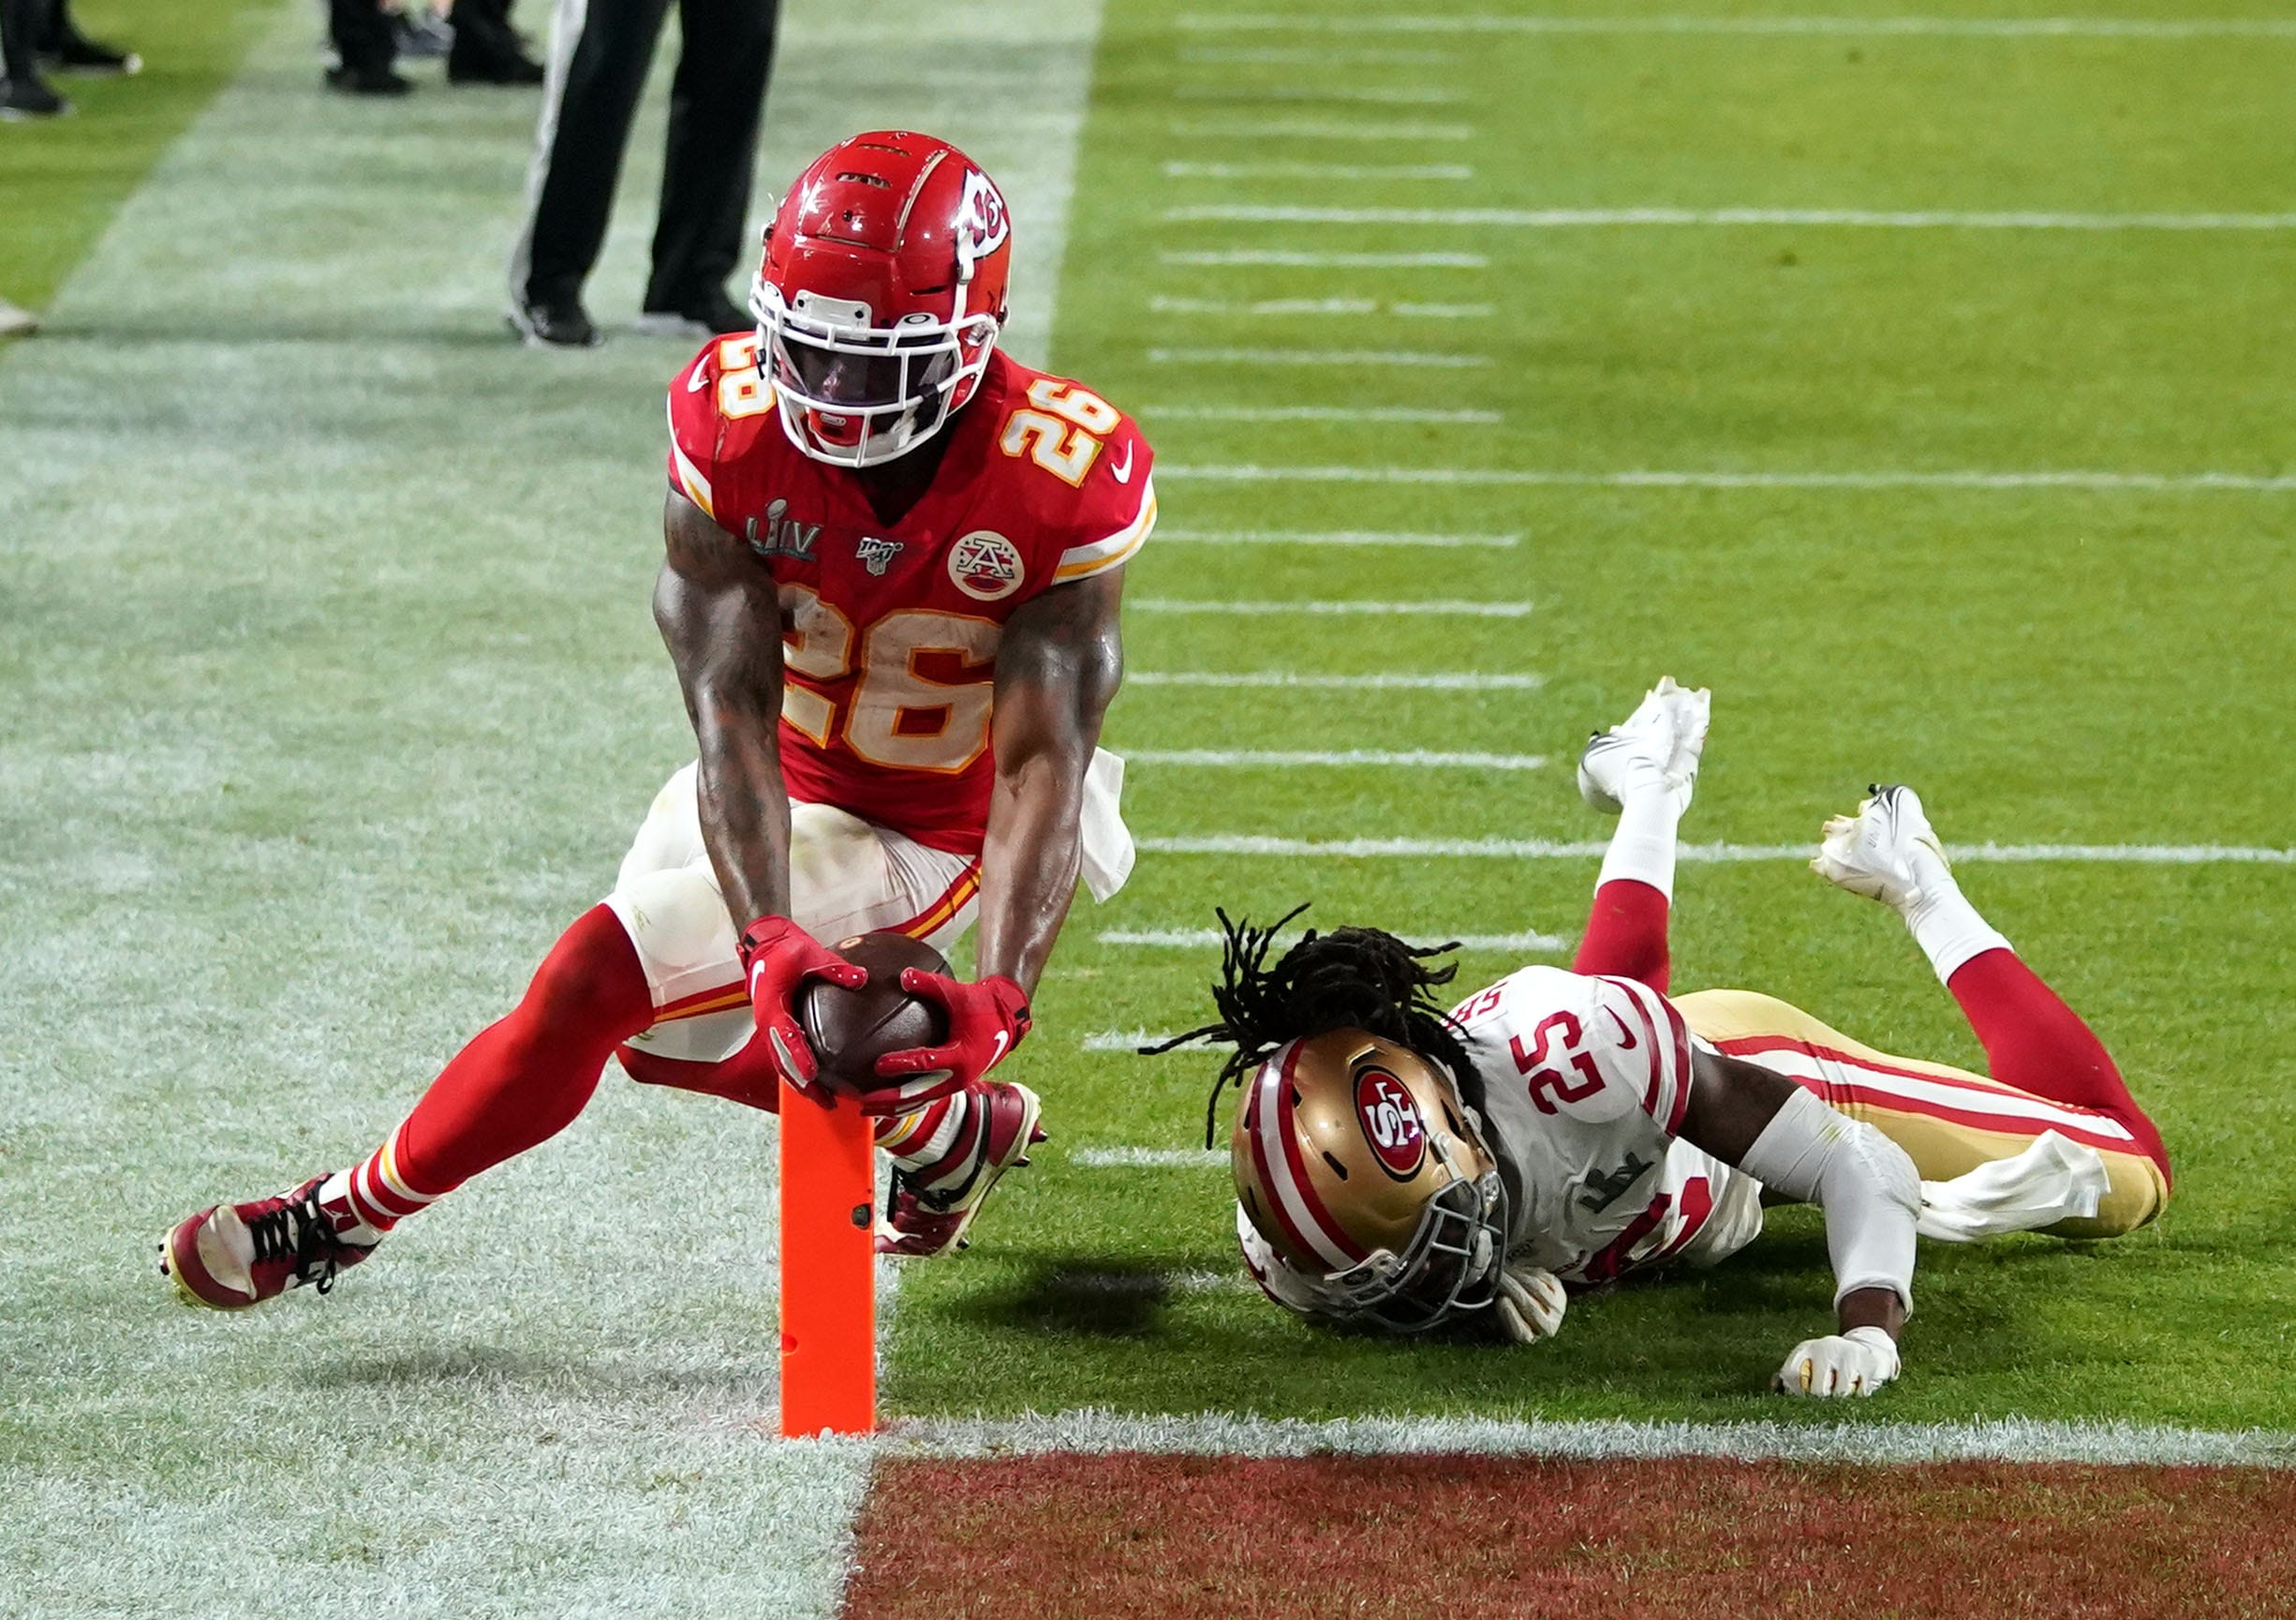 Super Bowl 2020: Kansas City Chiefs use stunning rally to beat San Francisco 49ers for first title in 50 years